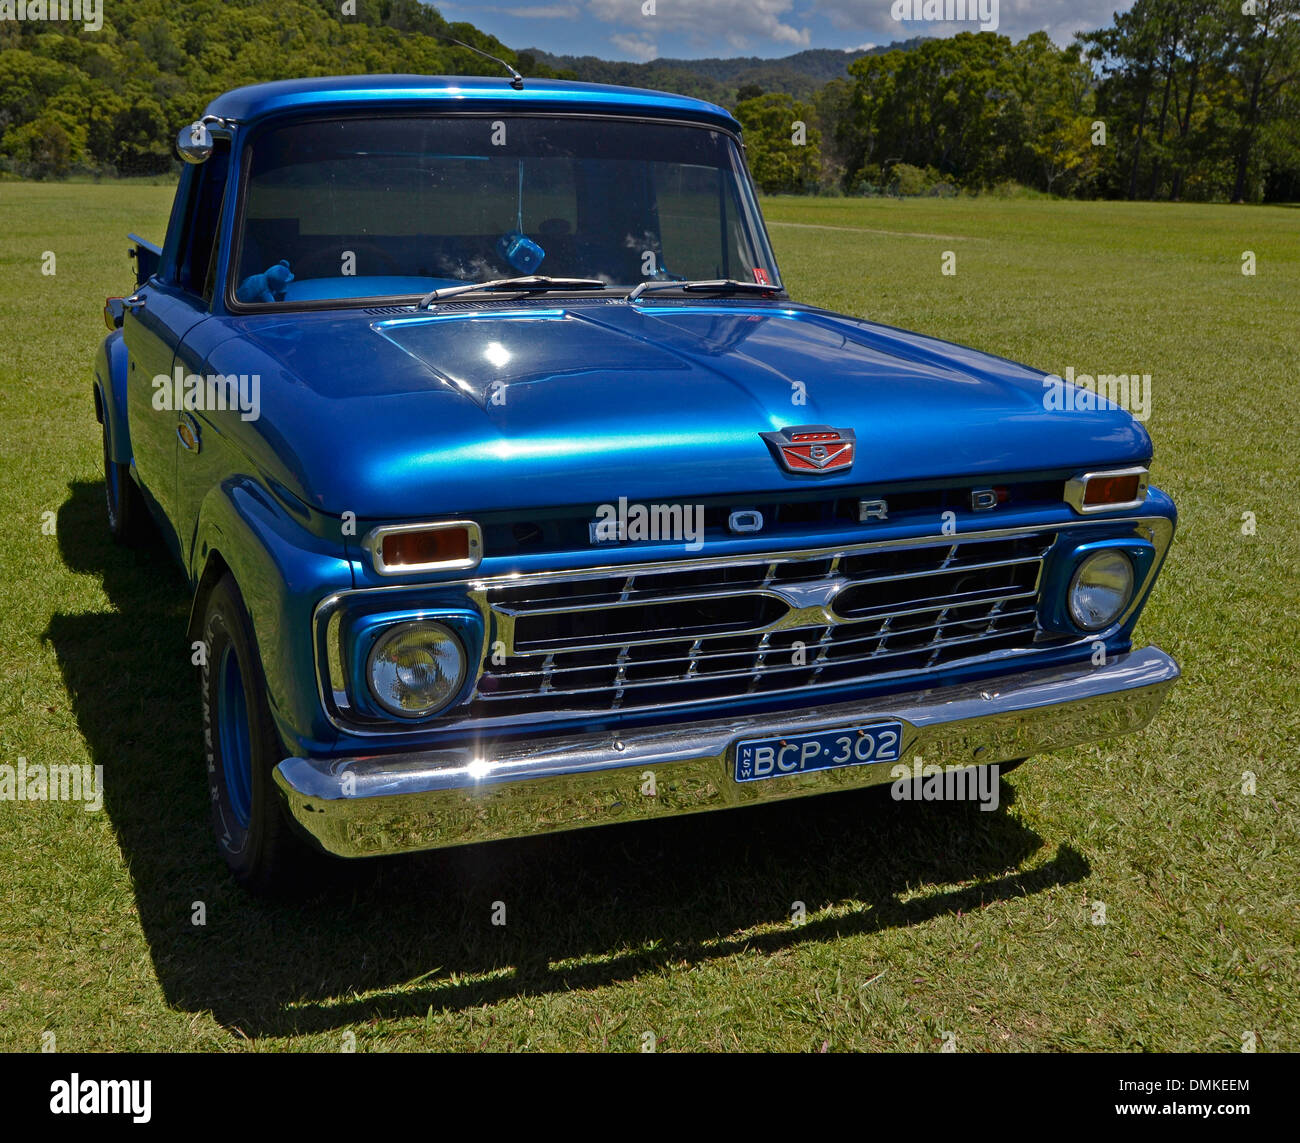 Classic American Ford Pick Up Truck Stock Photo 64352700 Alamy